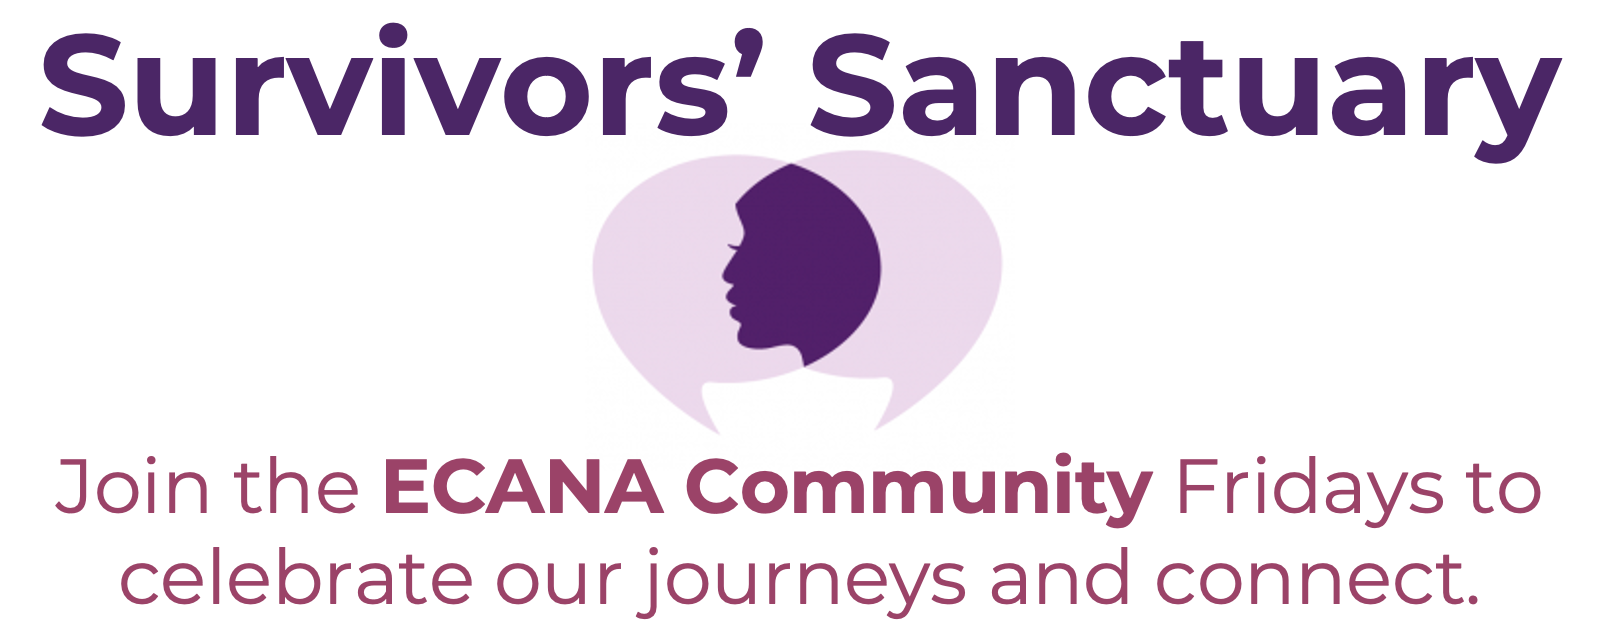 ECANA Survivors' Sanctuary on Fridays. Click to be taken to the webpage.